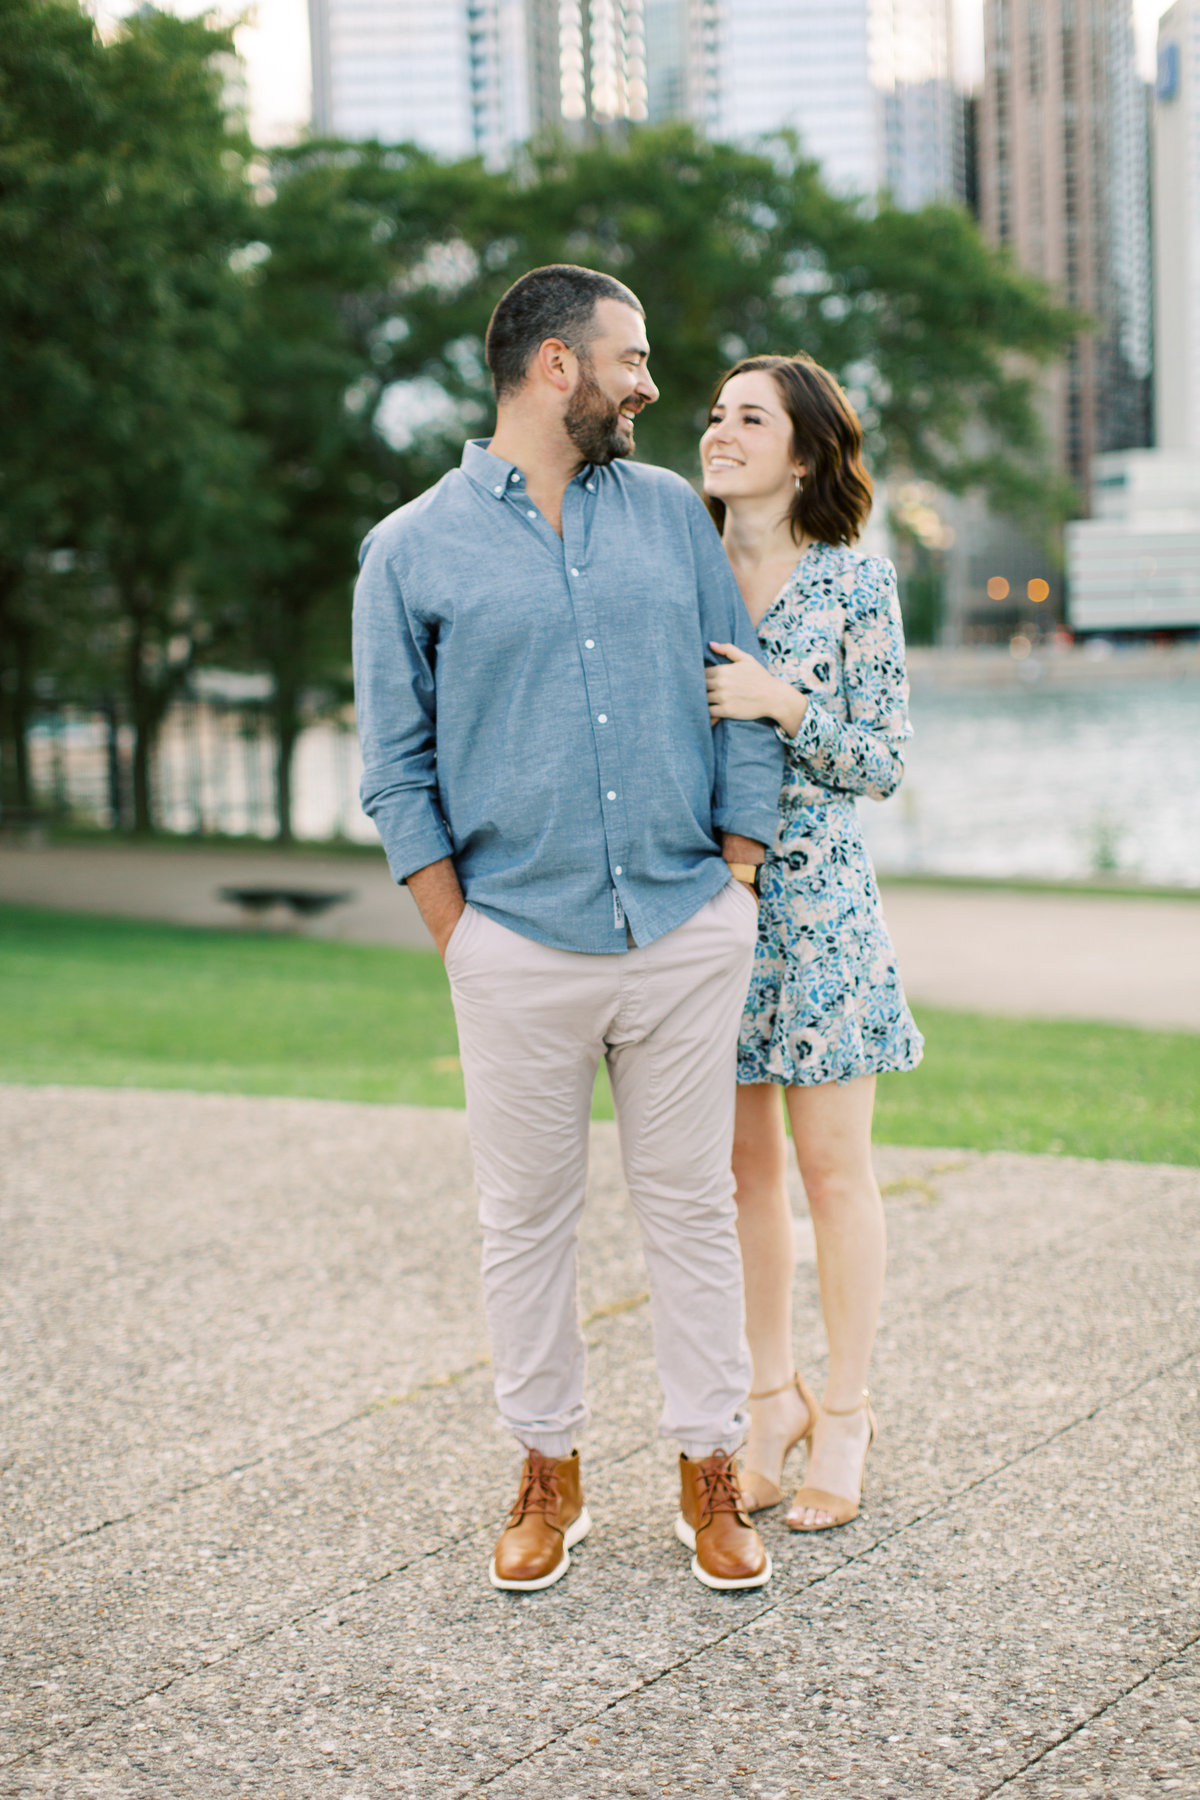 AllieDavid_Engagement_September042019_25